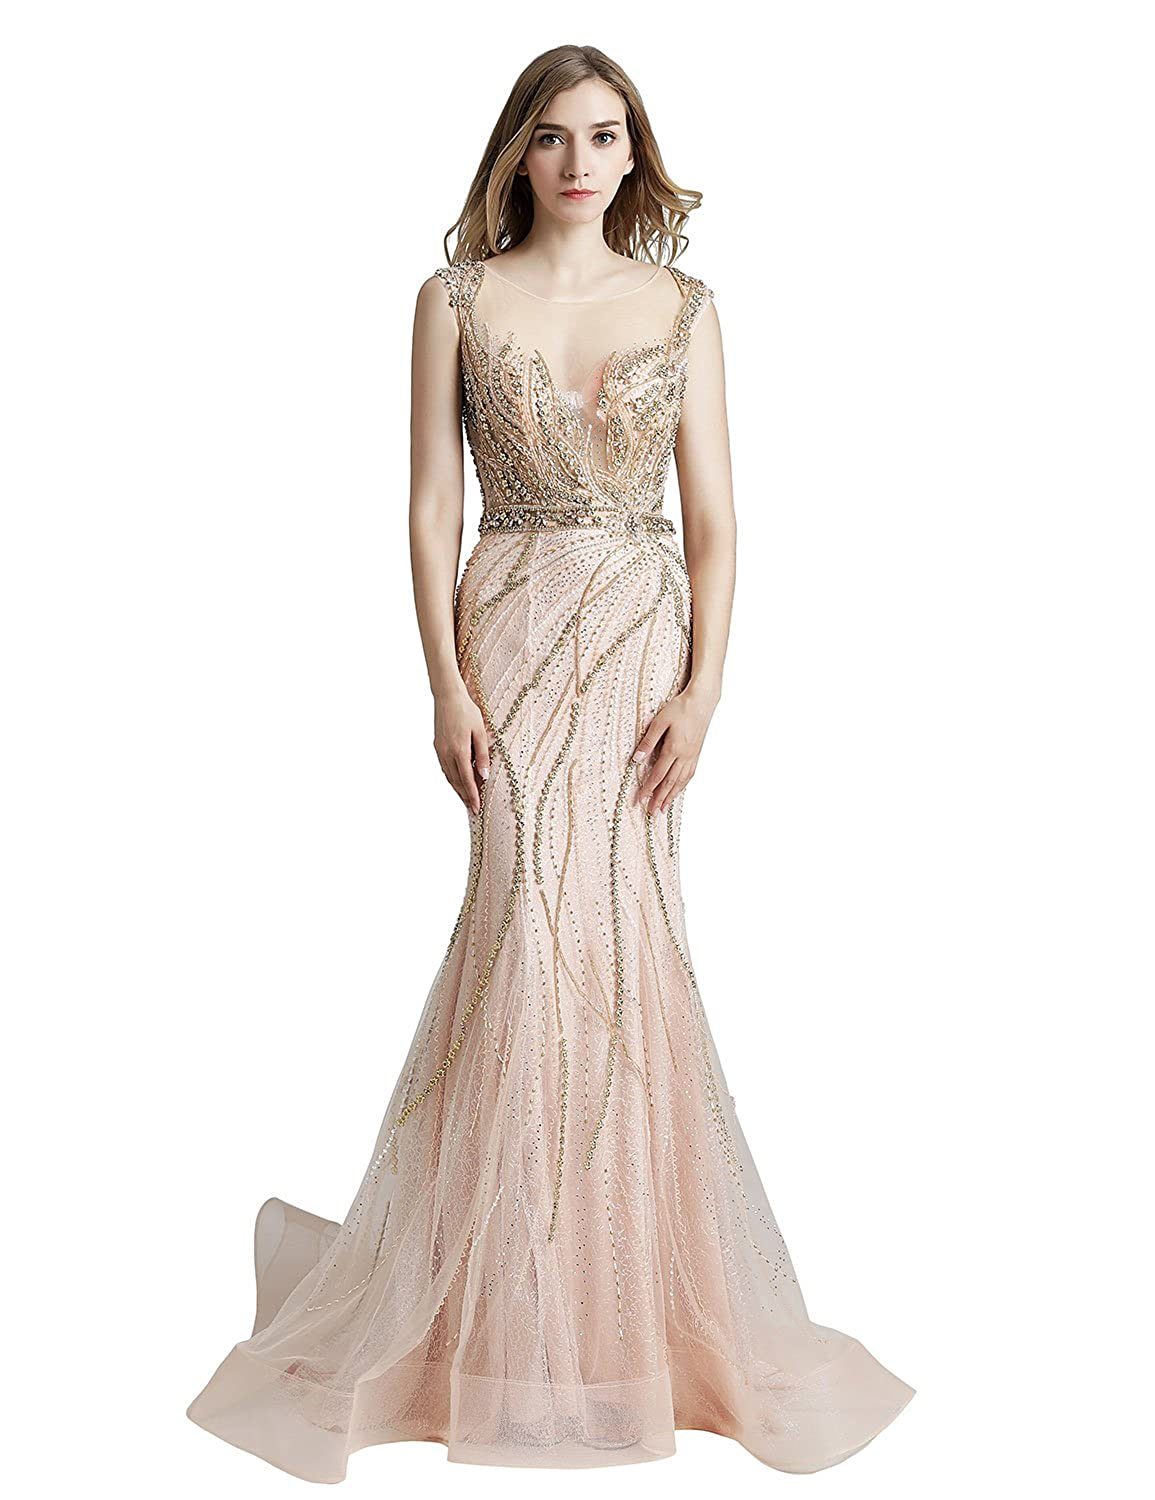 428champagne Sarahbridal Womens Lace Prom Dresses Formal Evening Gown with Half Sleeve SD328